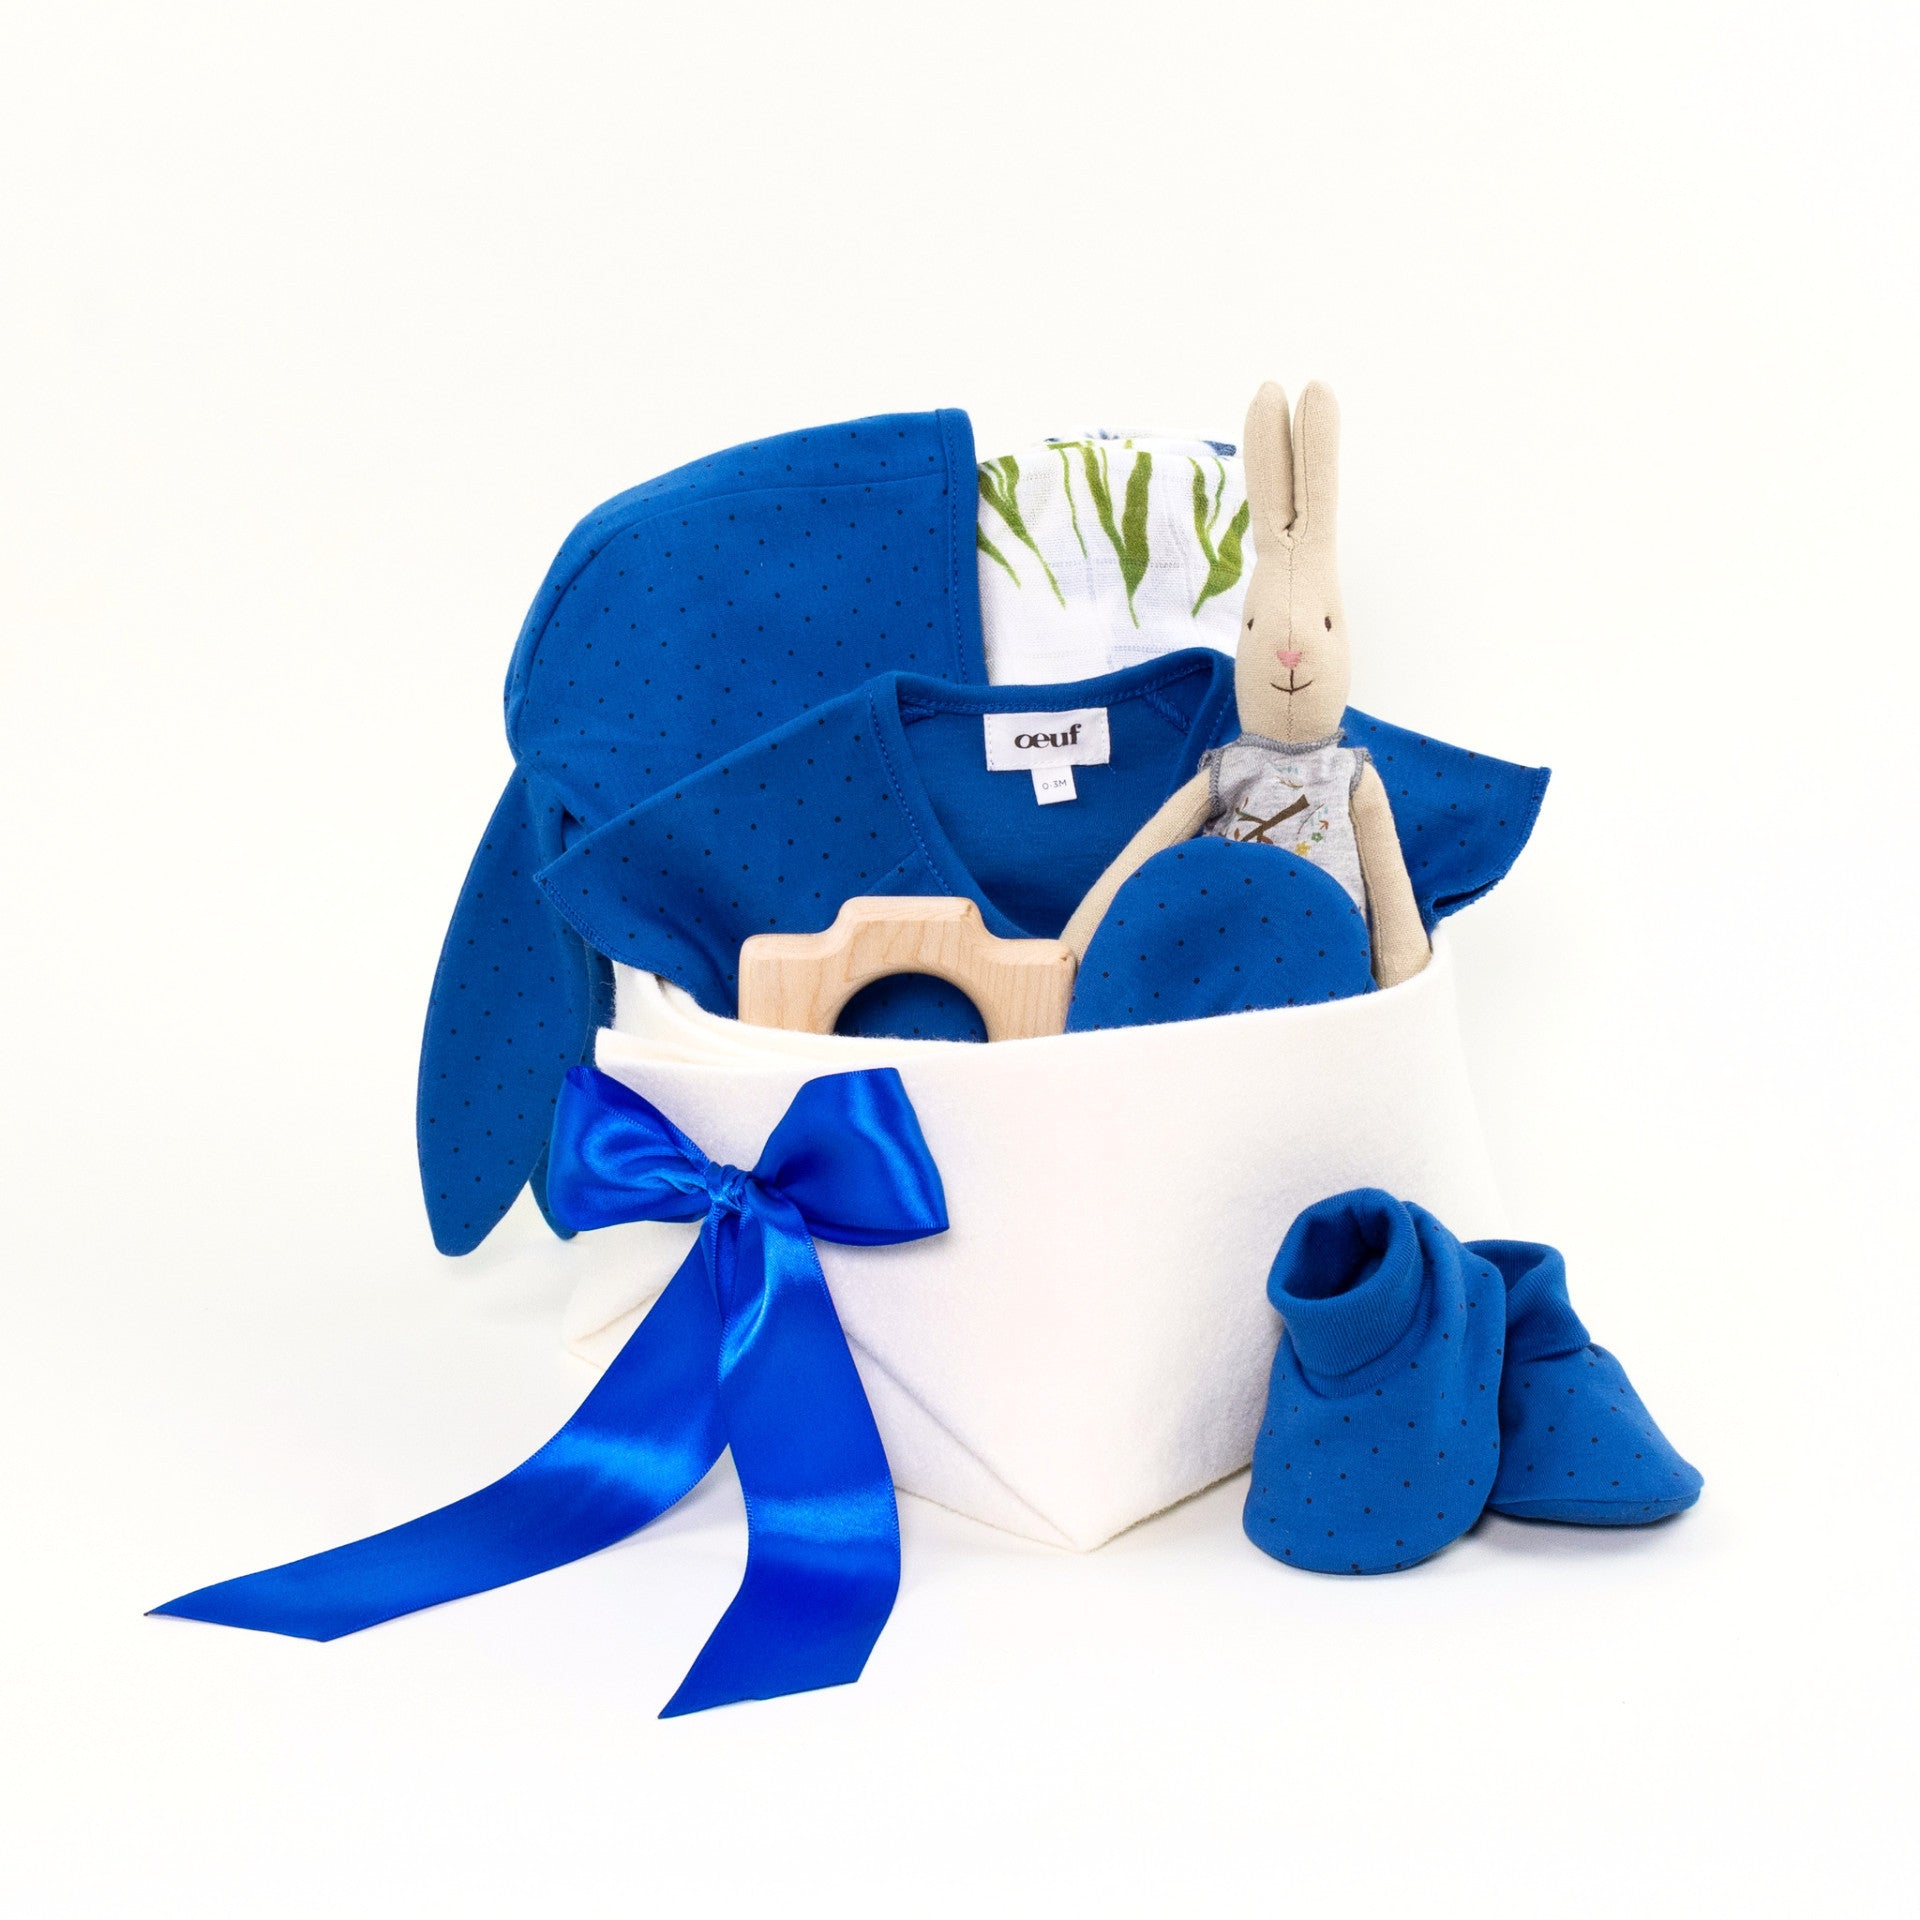 Luxury Baby Gift Basket featuring Oeuf at Bonjour Baby Baskets